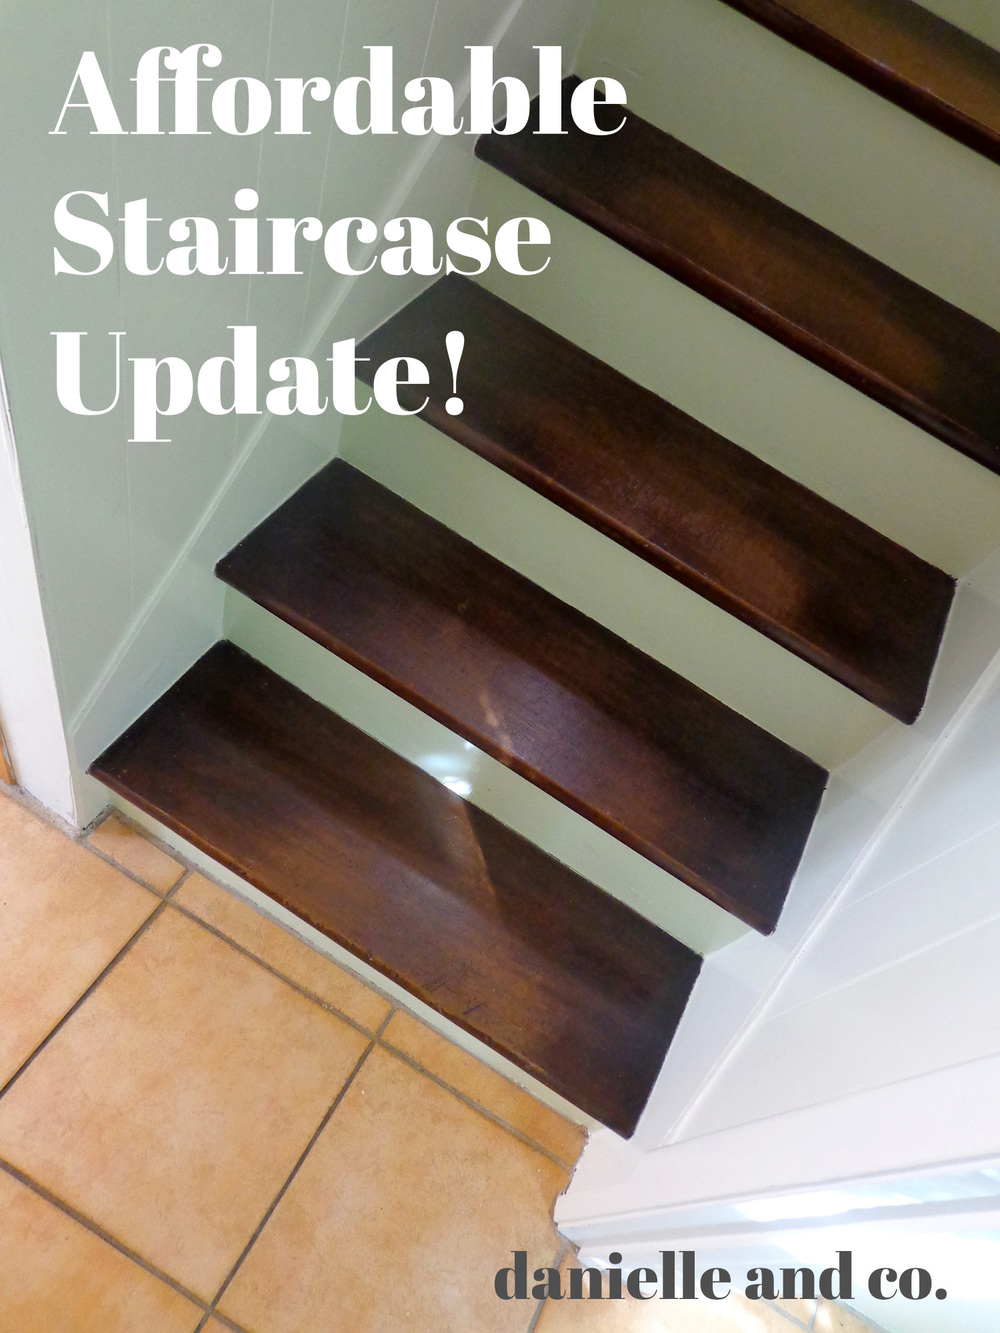 affordable-staircase-update